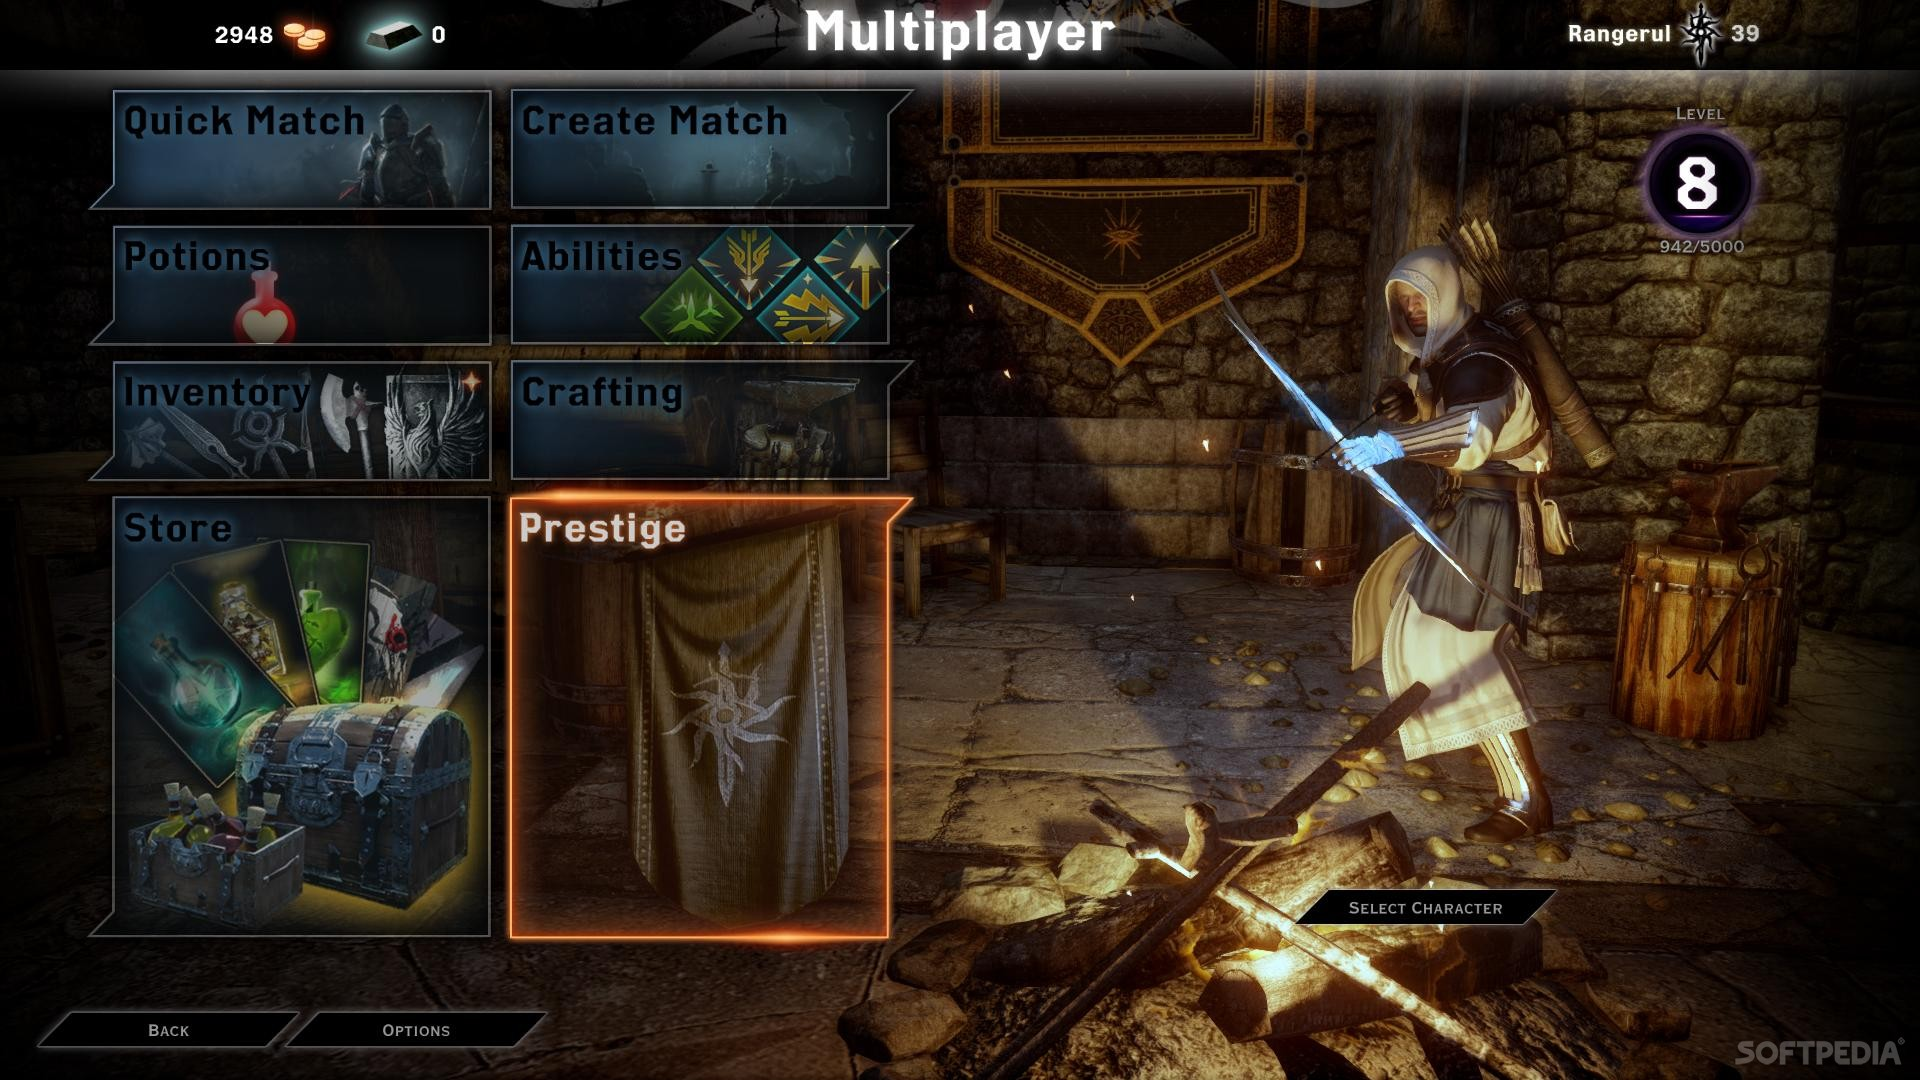 Dragon age inquisition matchmaking issues